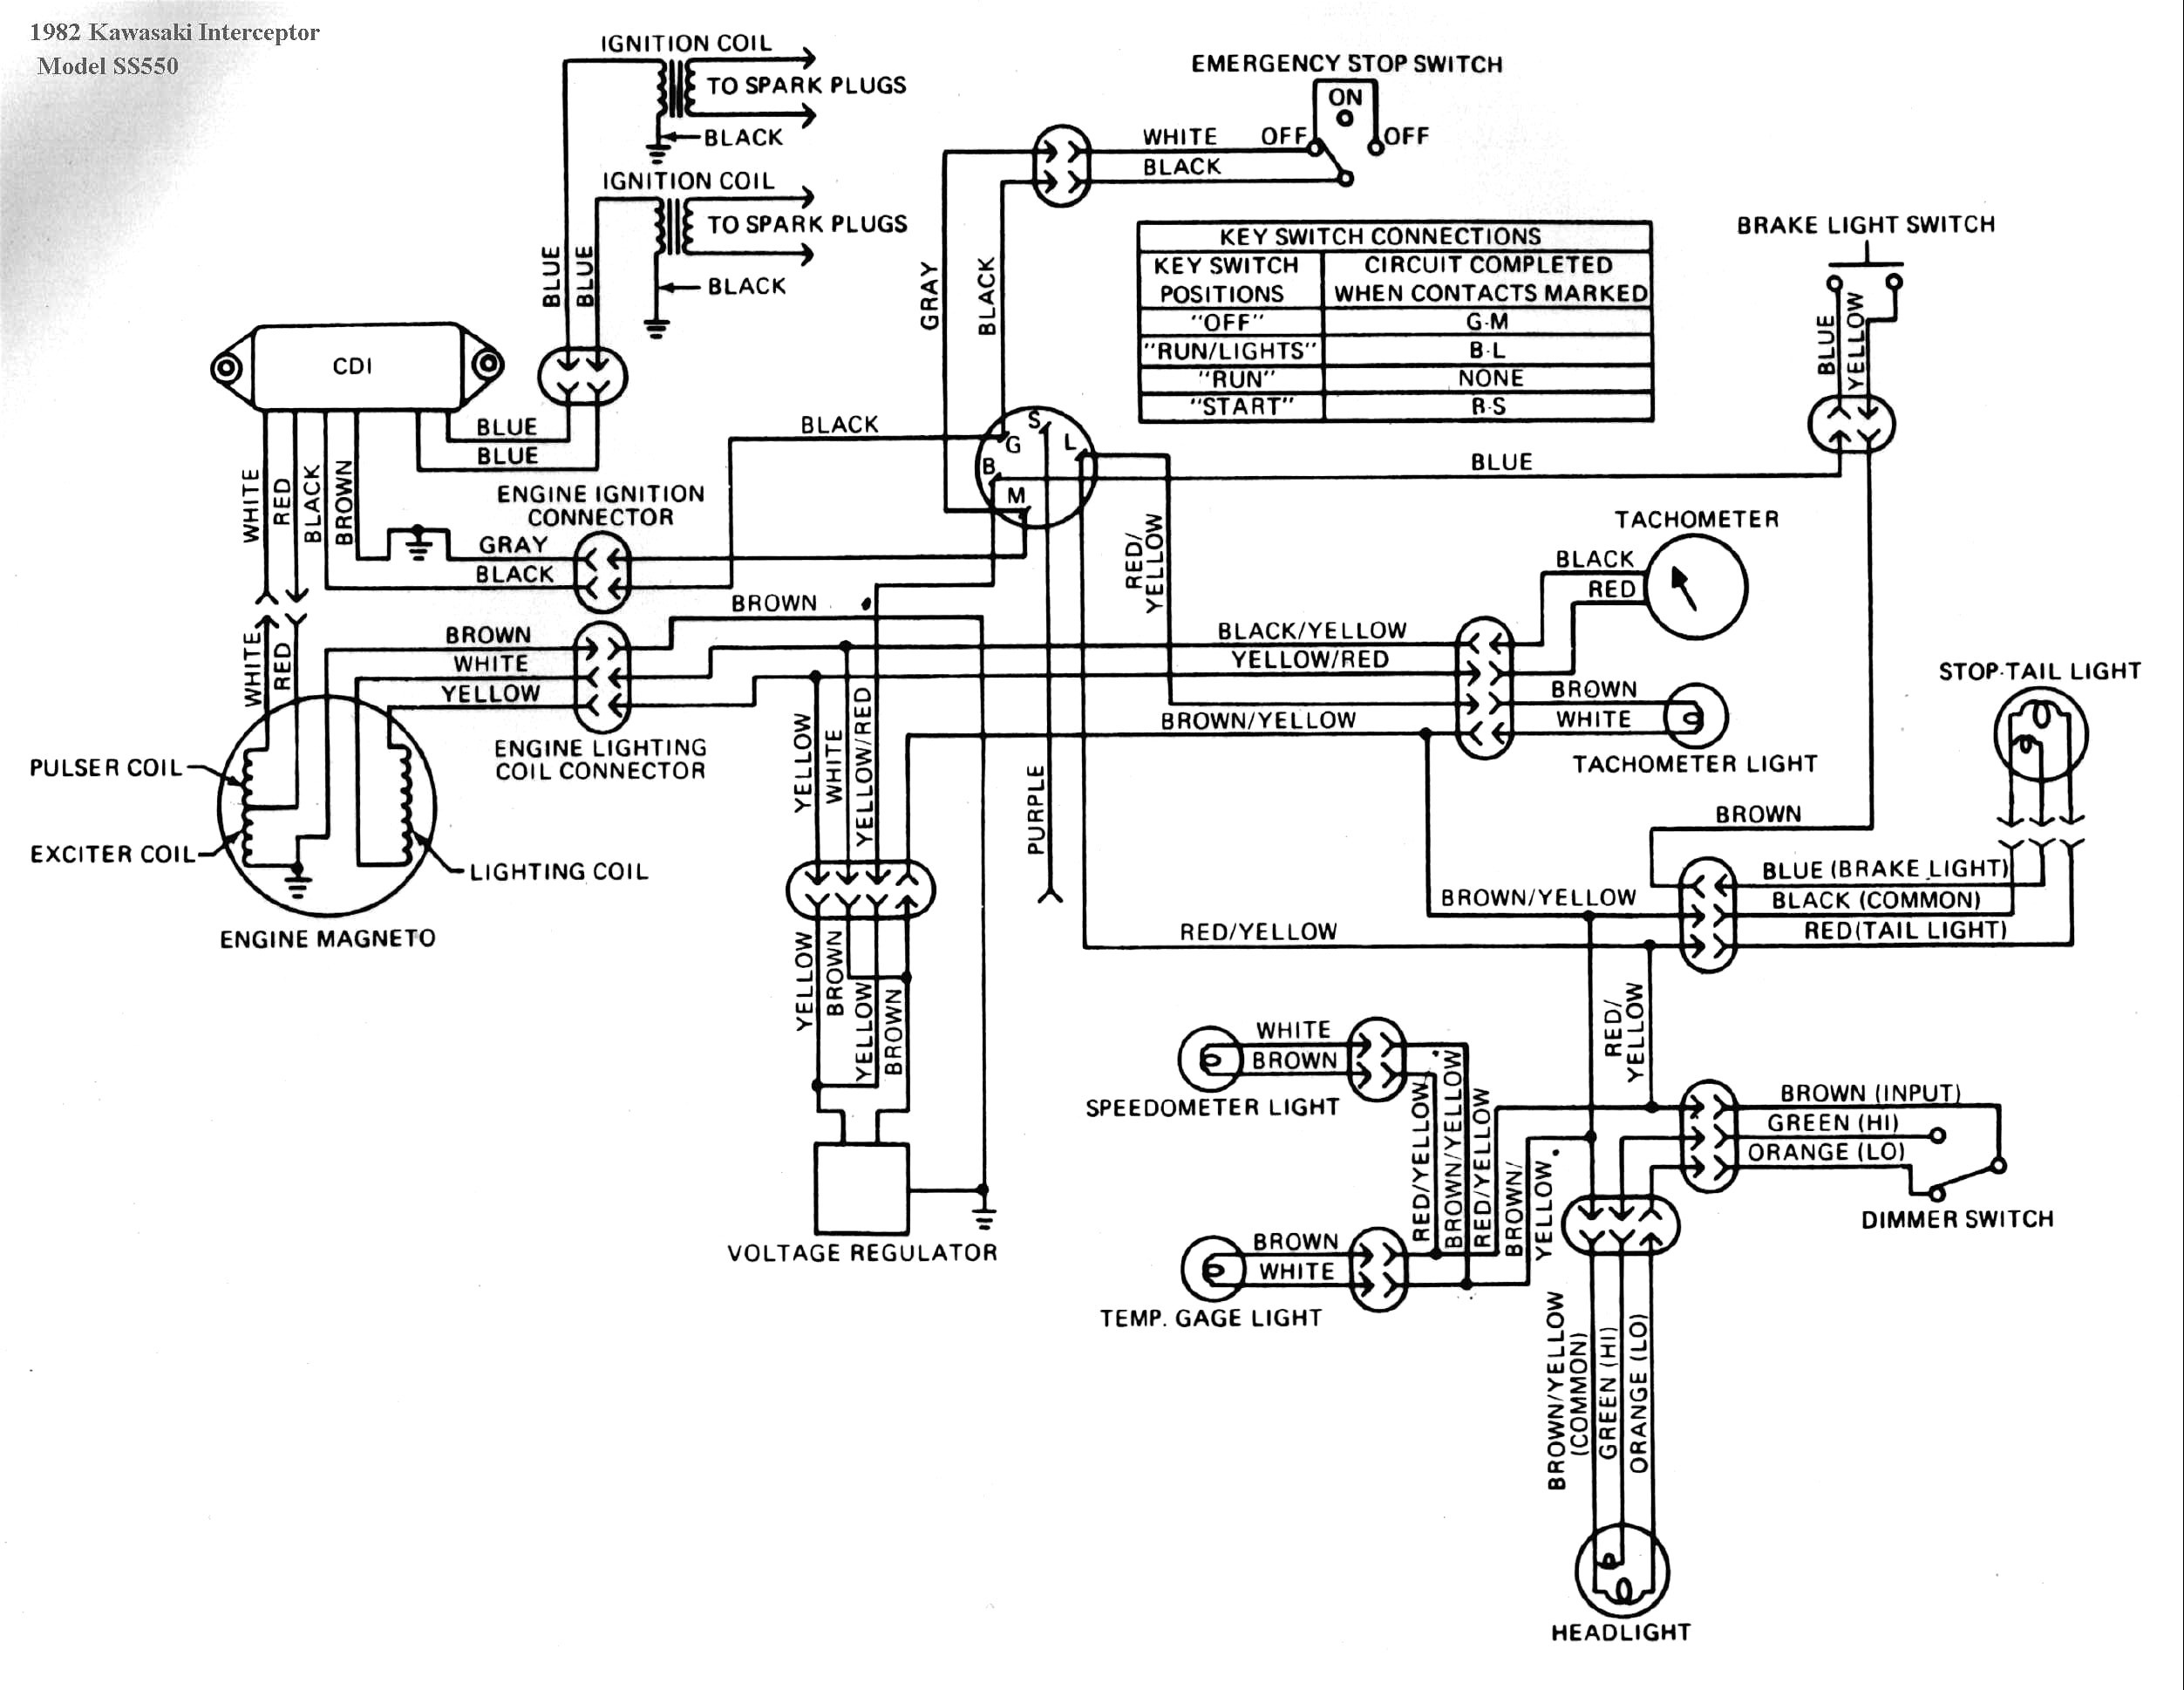 Kawasaki 750 Jet Ski Wiring Diagram Library. Starter Wiring Diagram Kawasaki Klr Trusted Diagrams \u2022. Kawasaki. Free Auto Wiring Diagrams 2006 Kawasaki Klr650 At Scoala.co